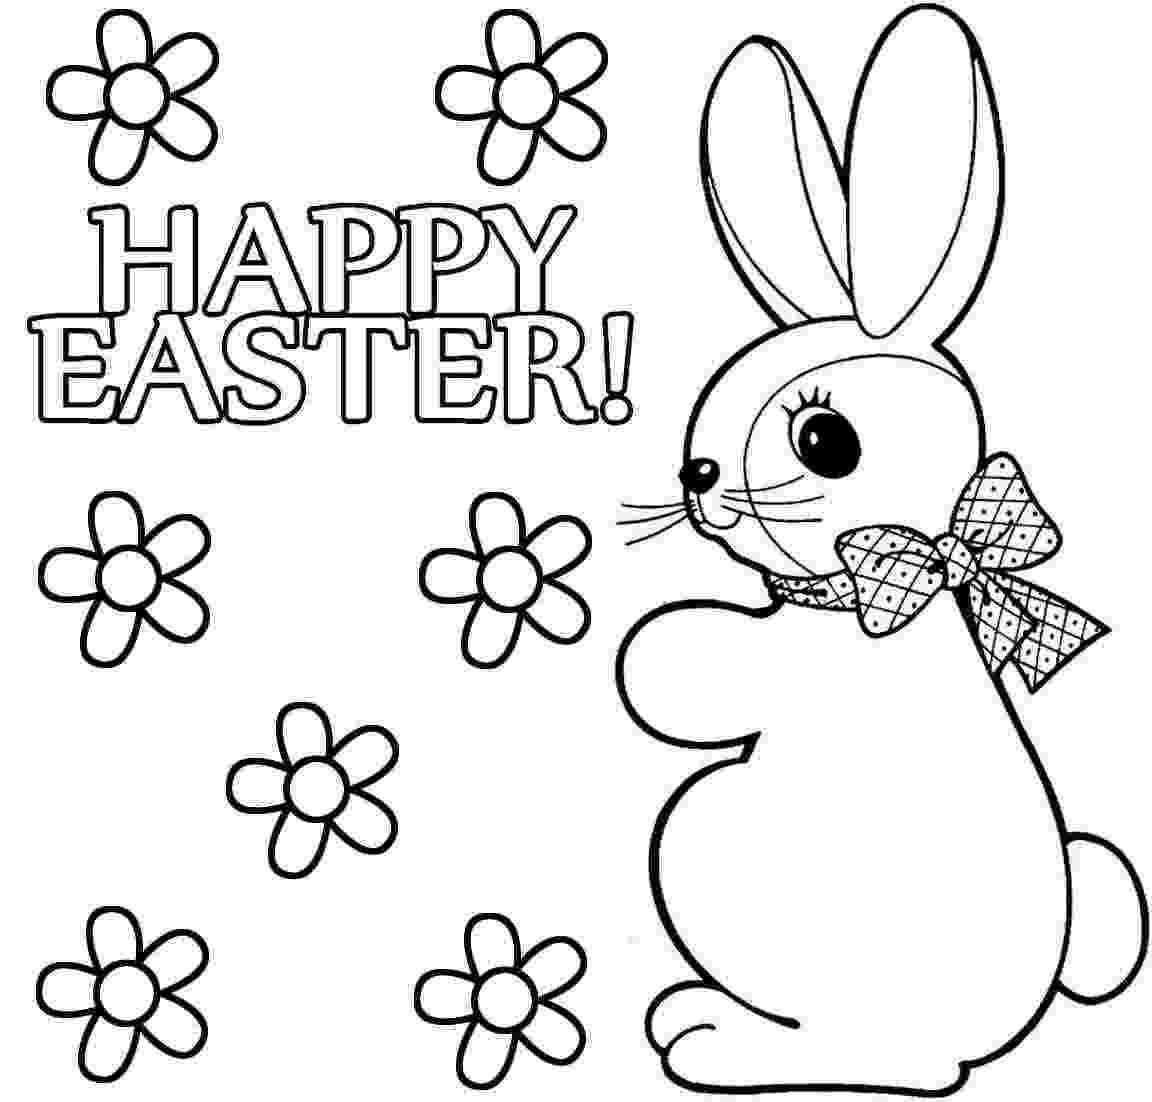 printable colouring sheets for easter easter free easter coloring pages easter egg coloring sheets colouring printable easter for